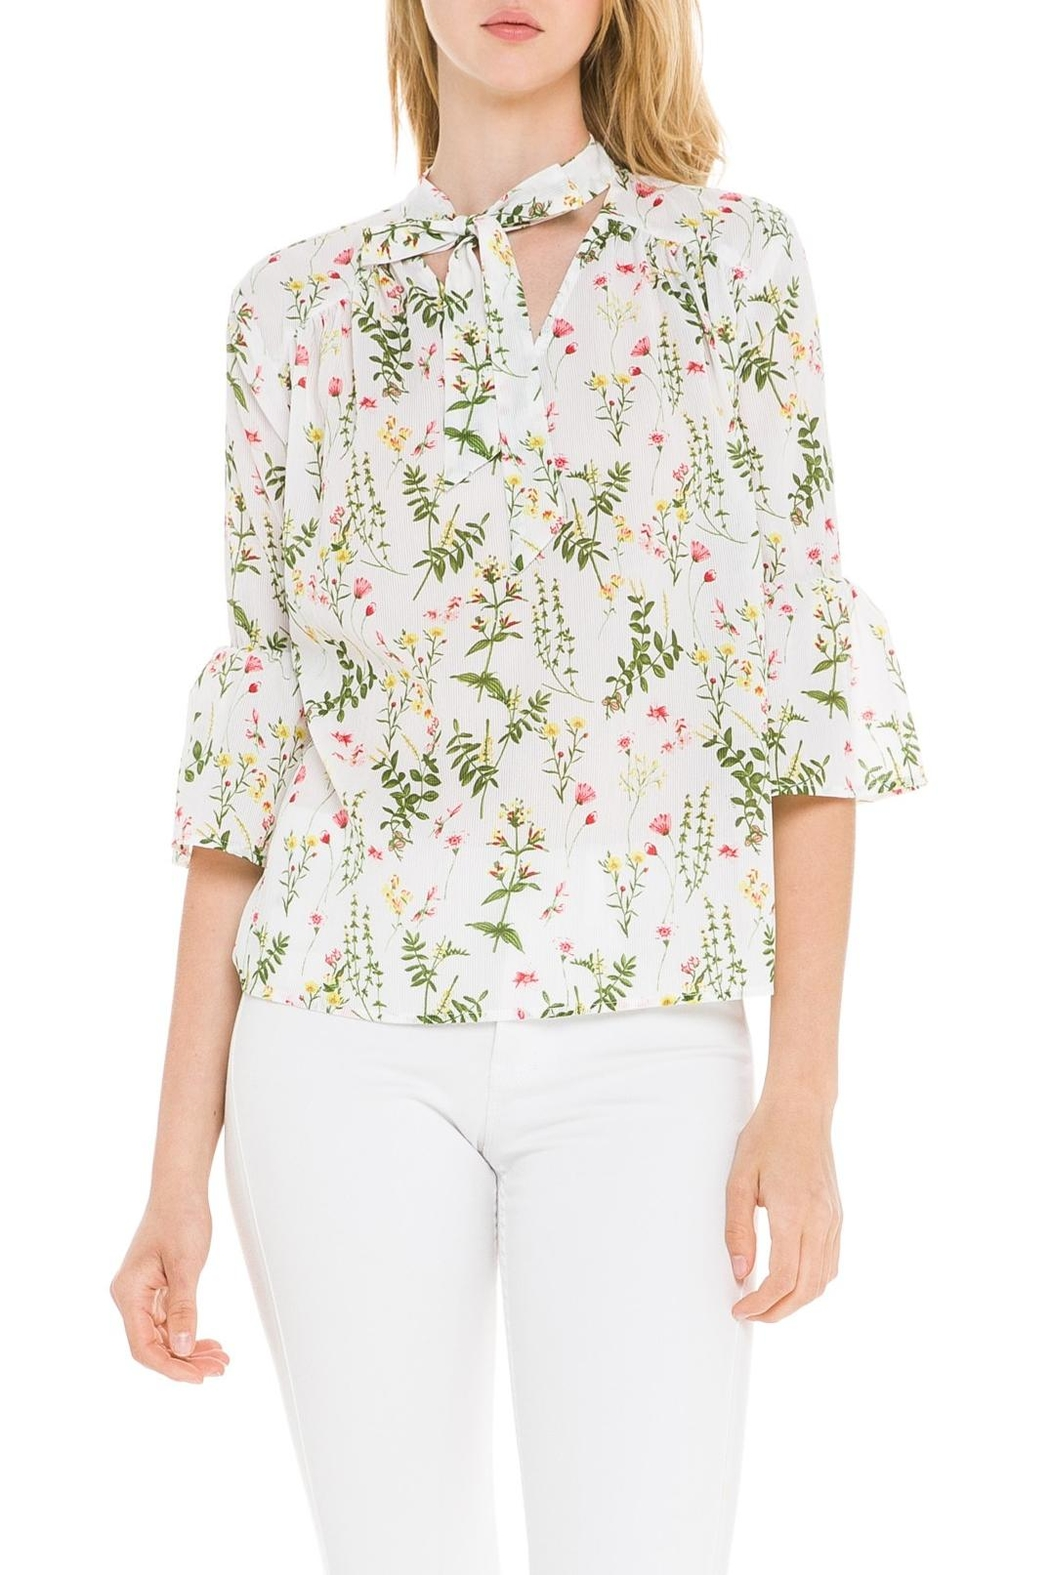 After Market Garden Party Blouse - Main Image